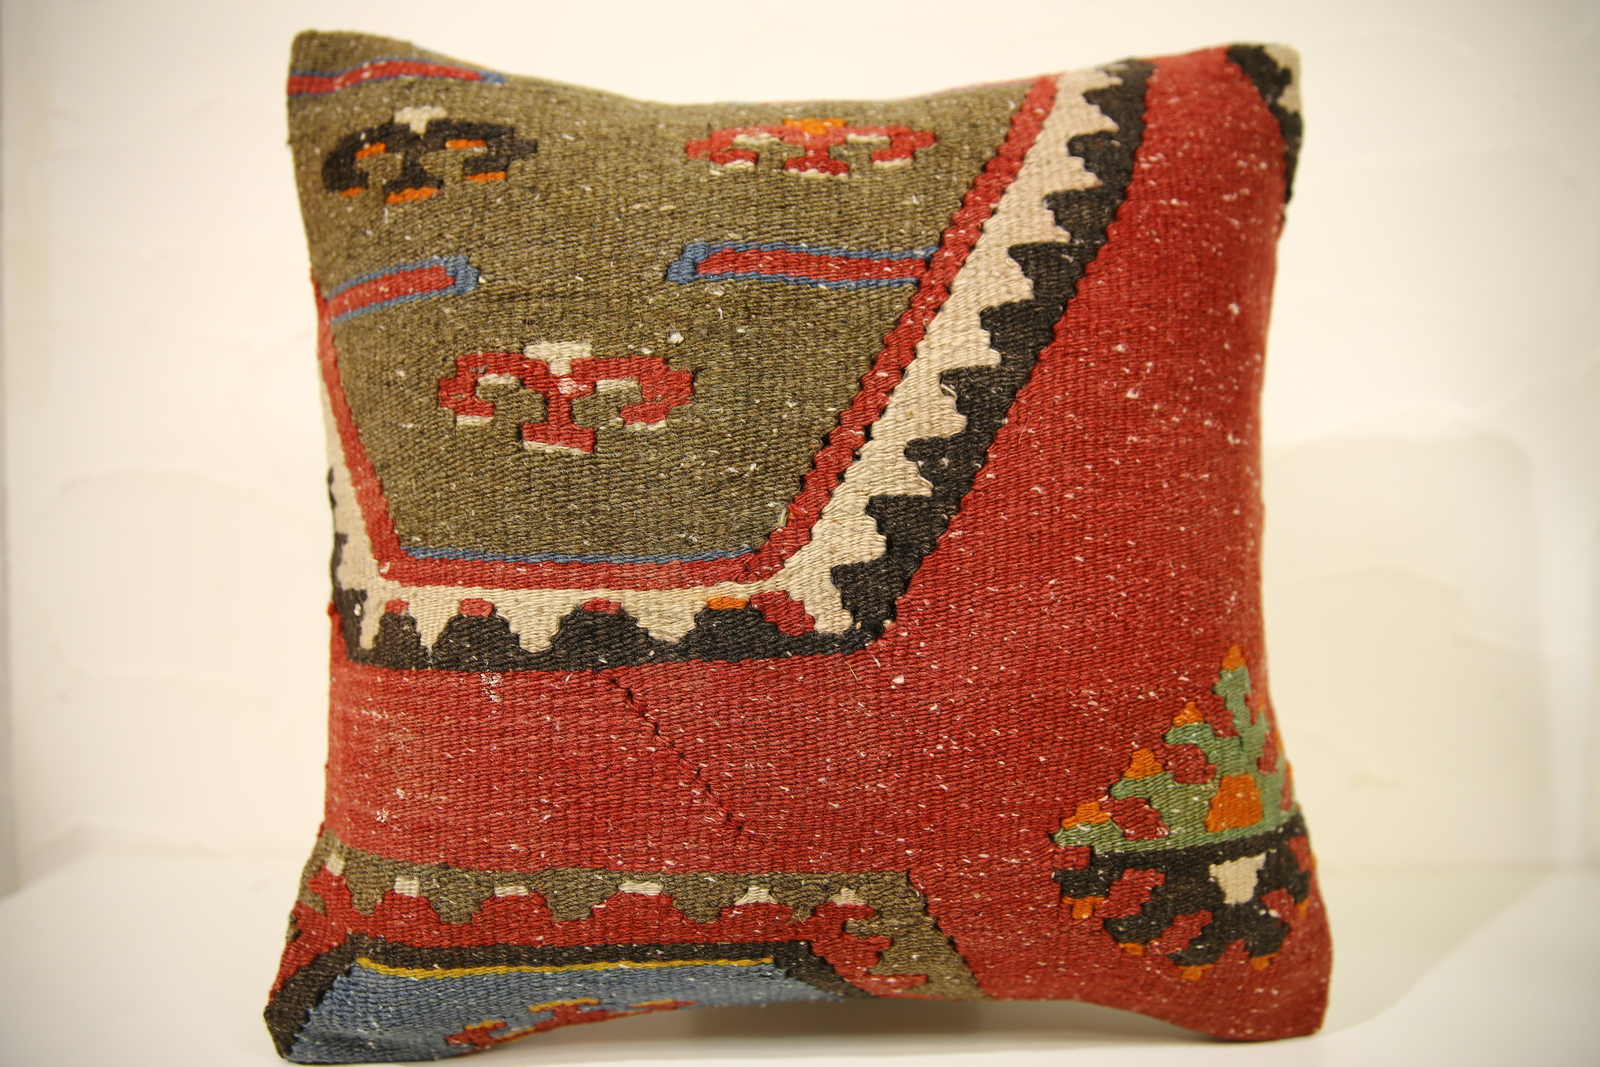 Turkish Kilim Throw Pillows : Kilim Pillows 16x16 Decorative Pillows 1594 Accent Pillows turkish pillow- KILIM PILLWOW ...